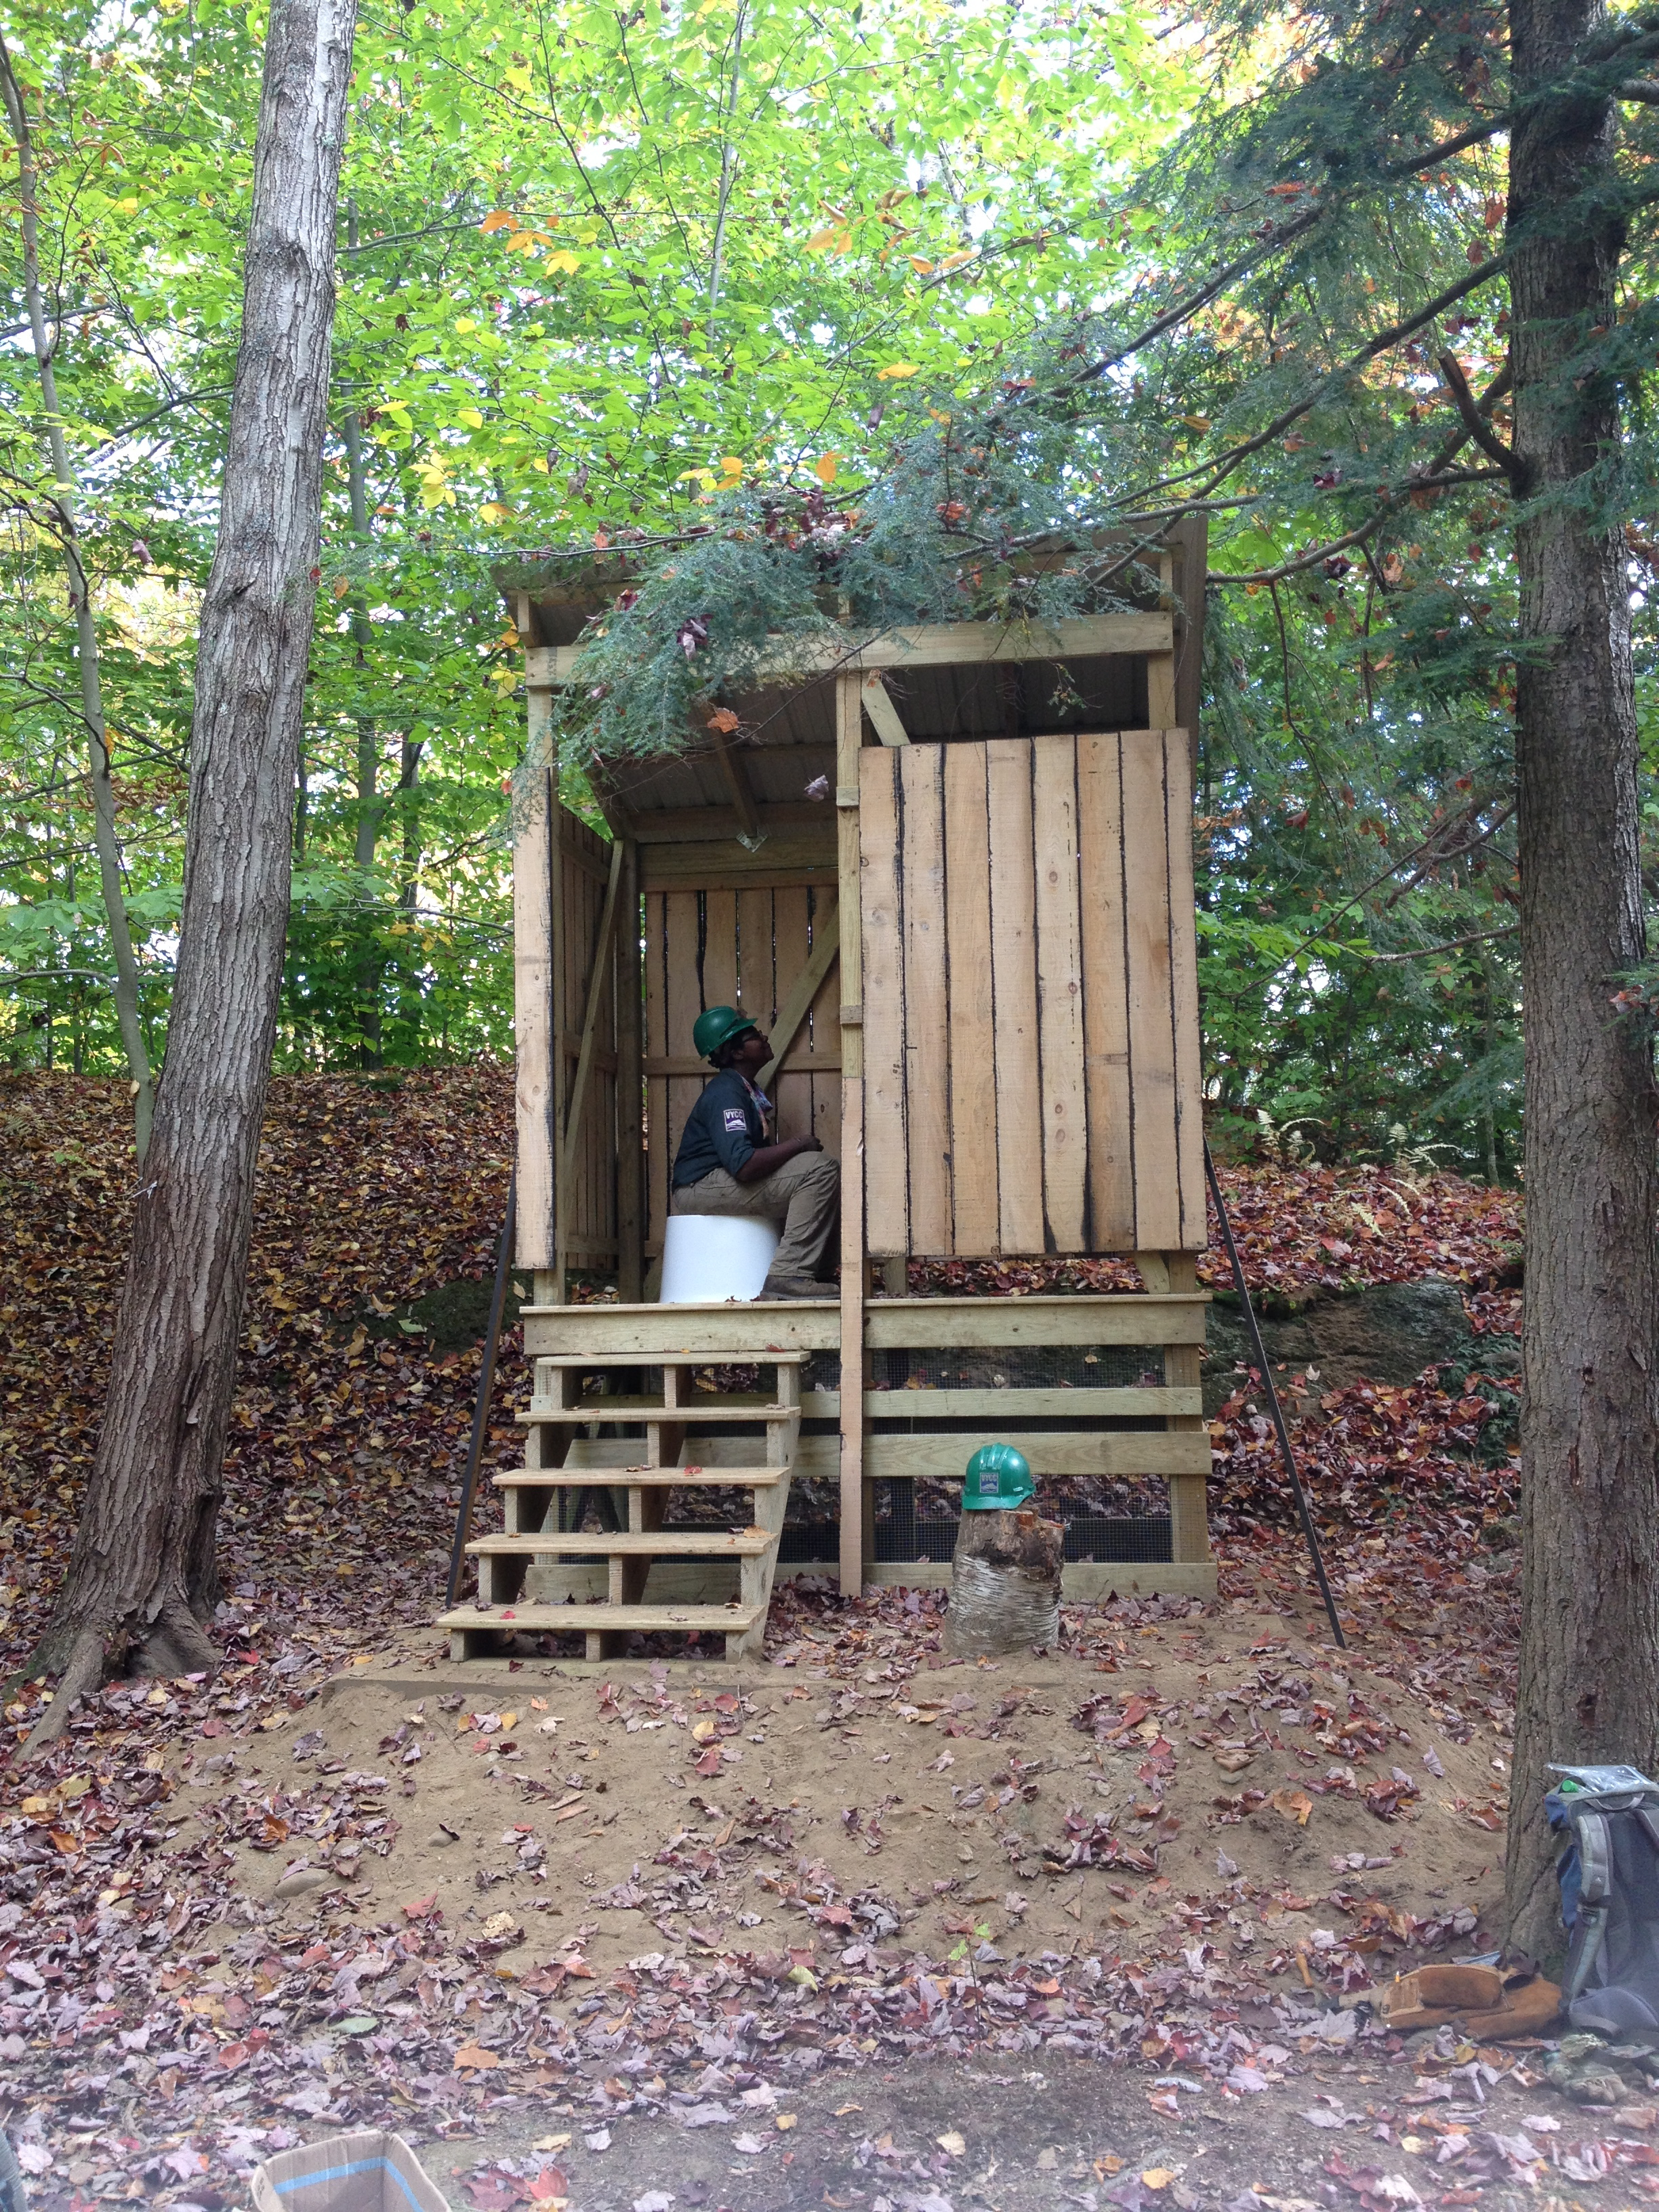 One of over a dozen composting toilets on remote campsites at Little River State Park, Vermont.